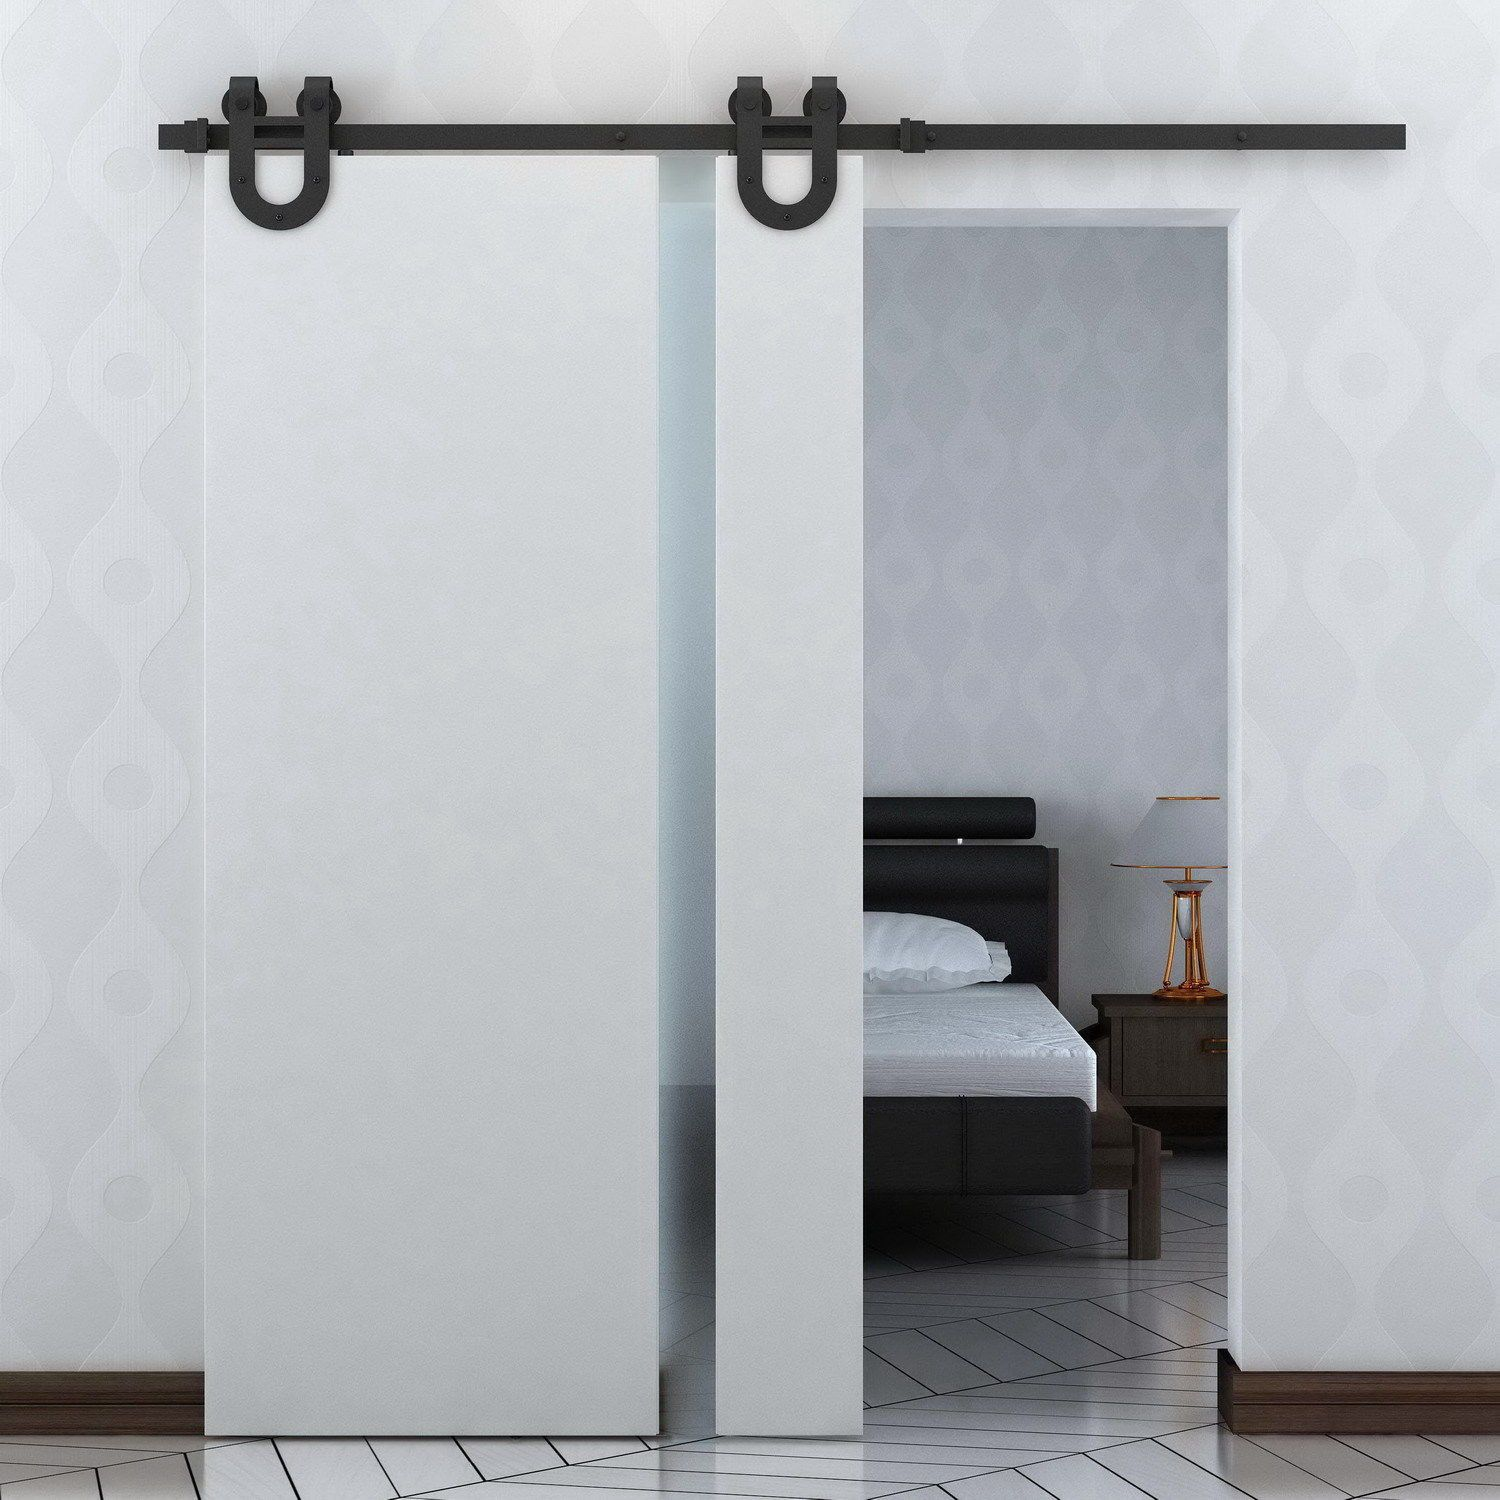 Features all hardware for setting up the sliding barn door